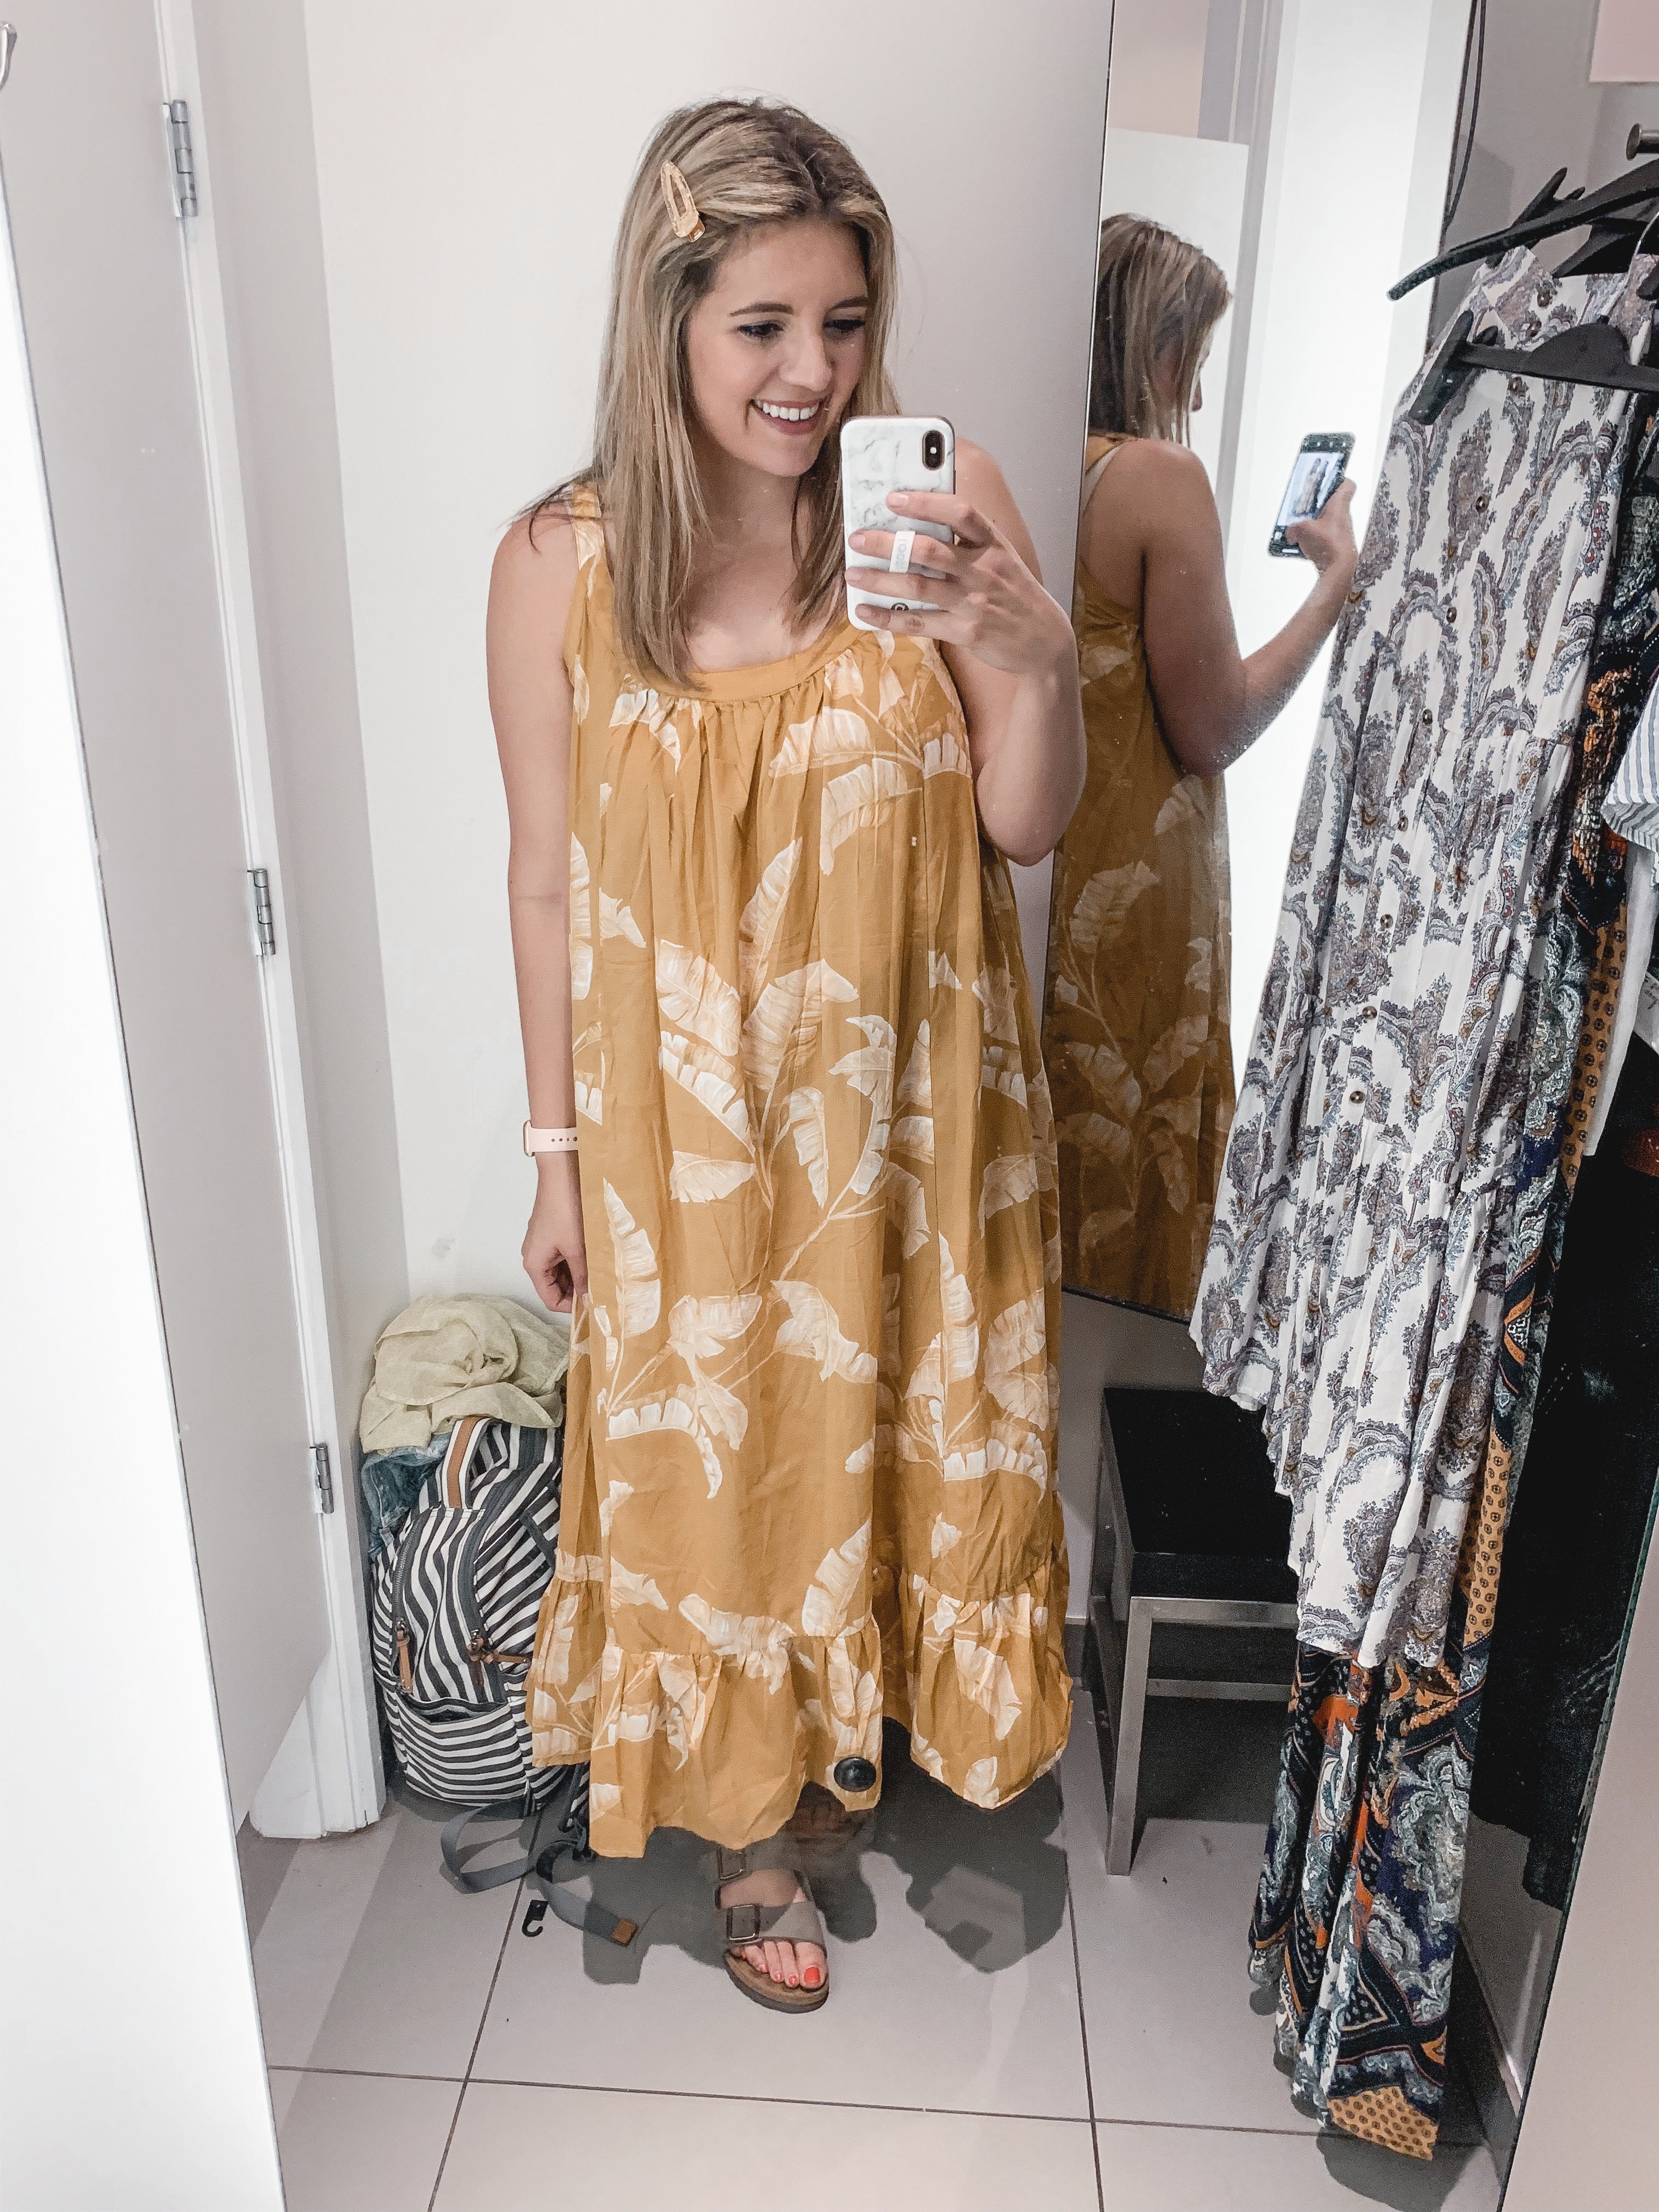 Virginia blogger, Lauren Dix, shares an H&M try-on featuring over 10 of the cutest H&M summer outfits.